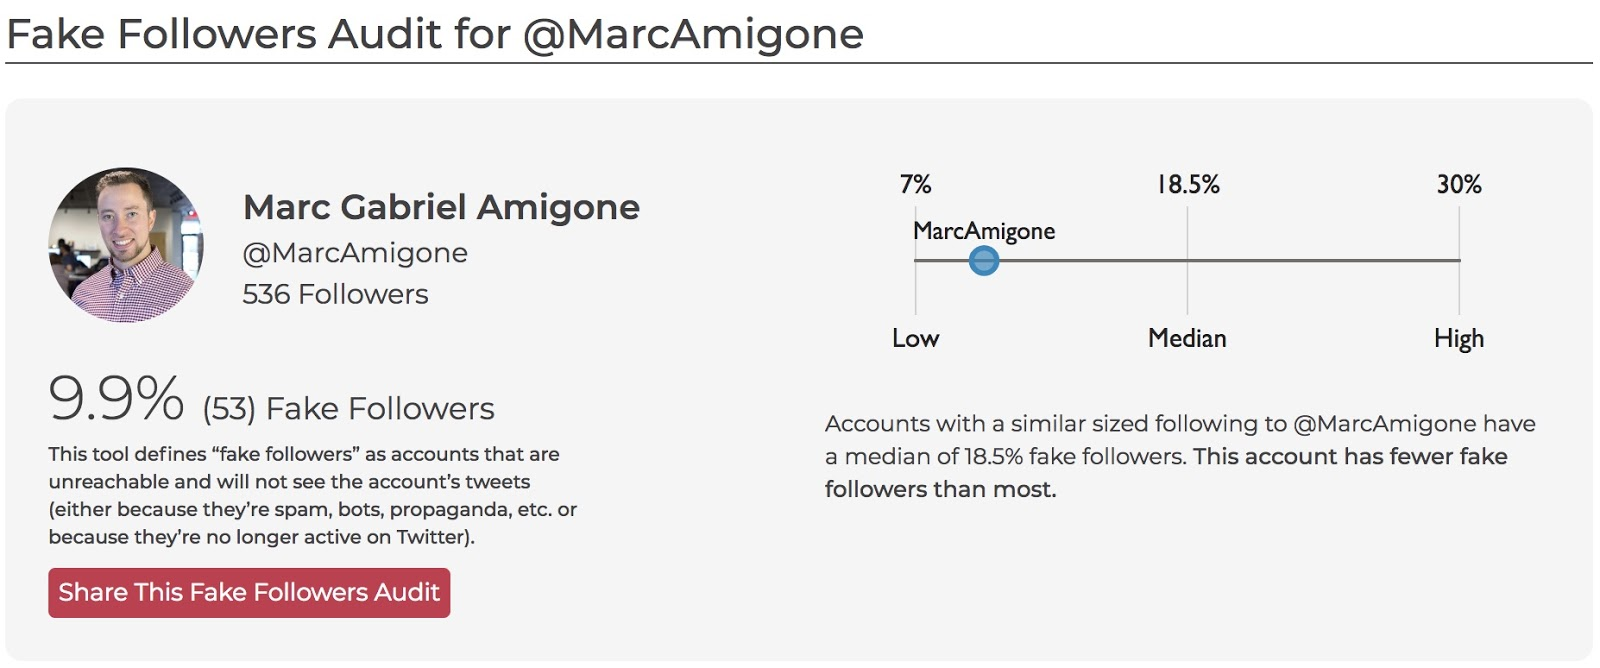 Rand Fishkin's SparkToro Launches New Free Tool: Fake Followers Audit